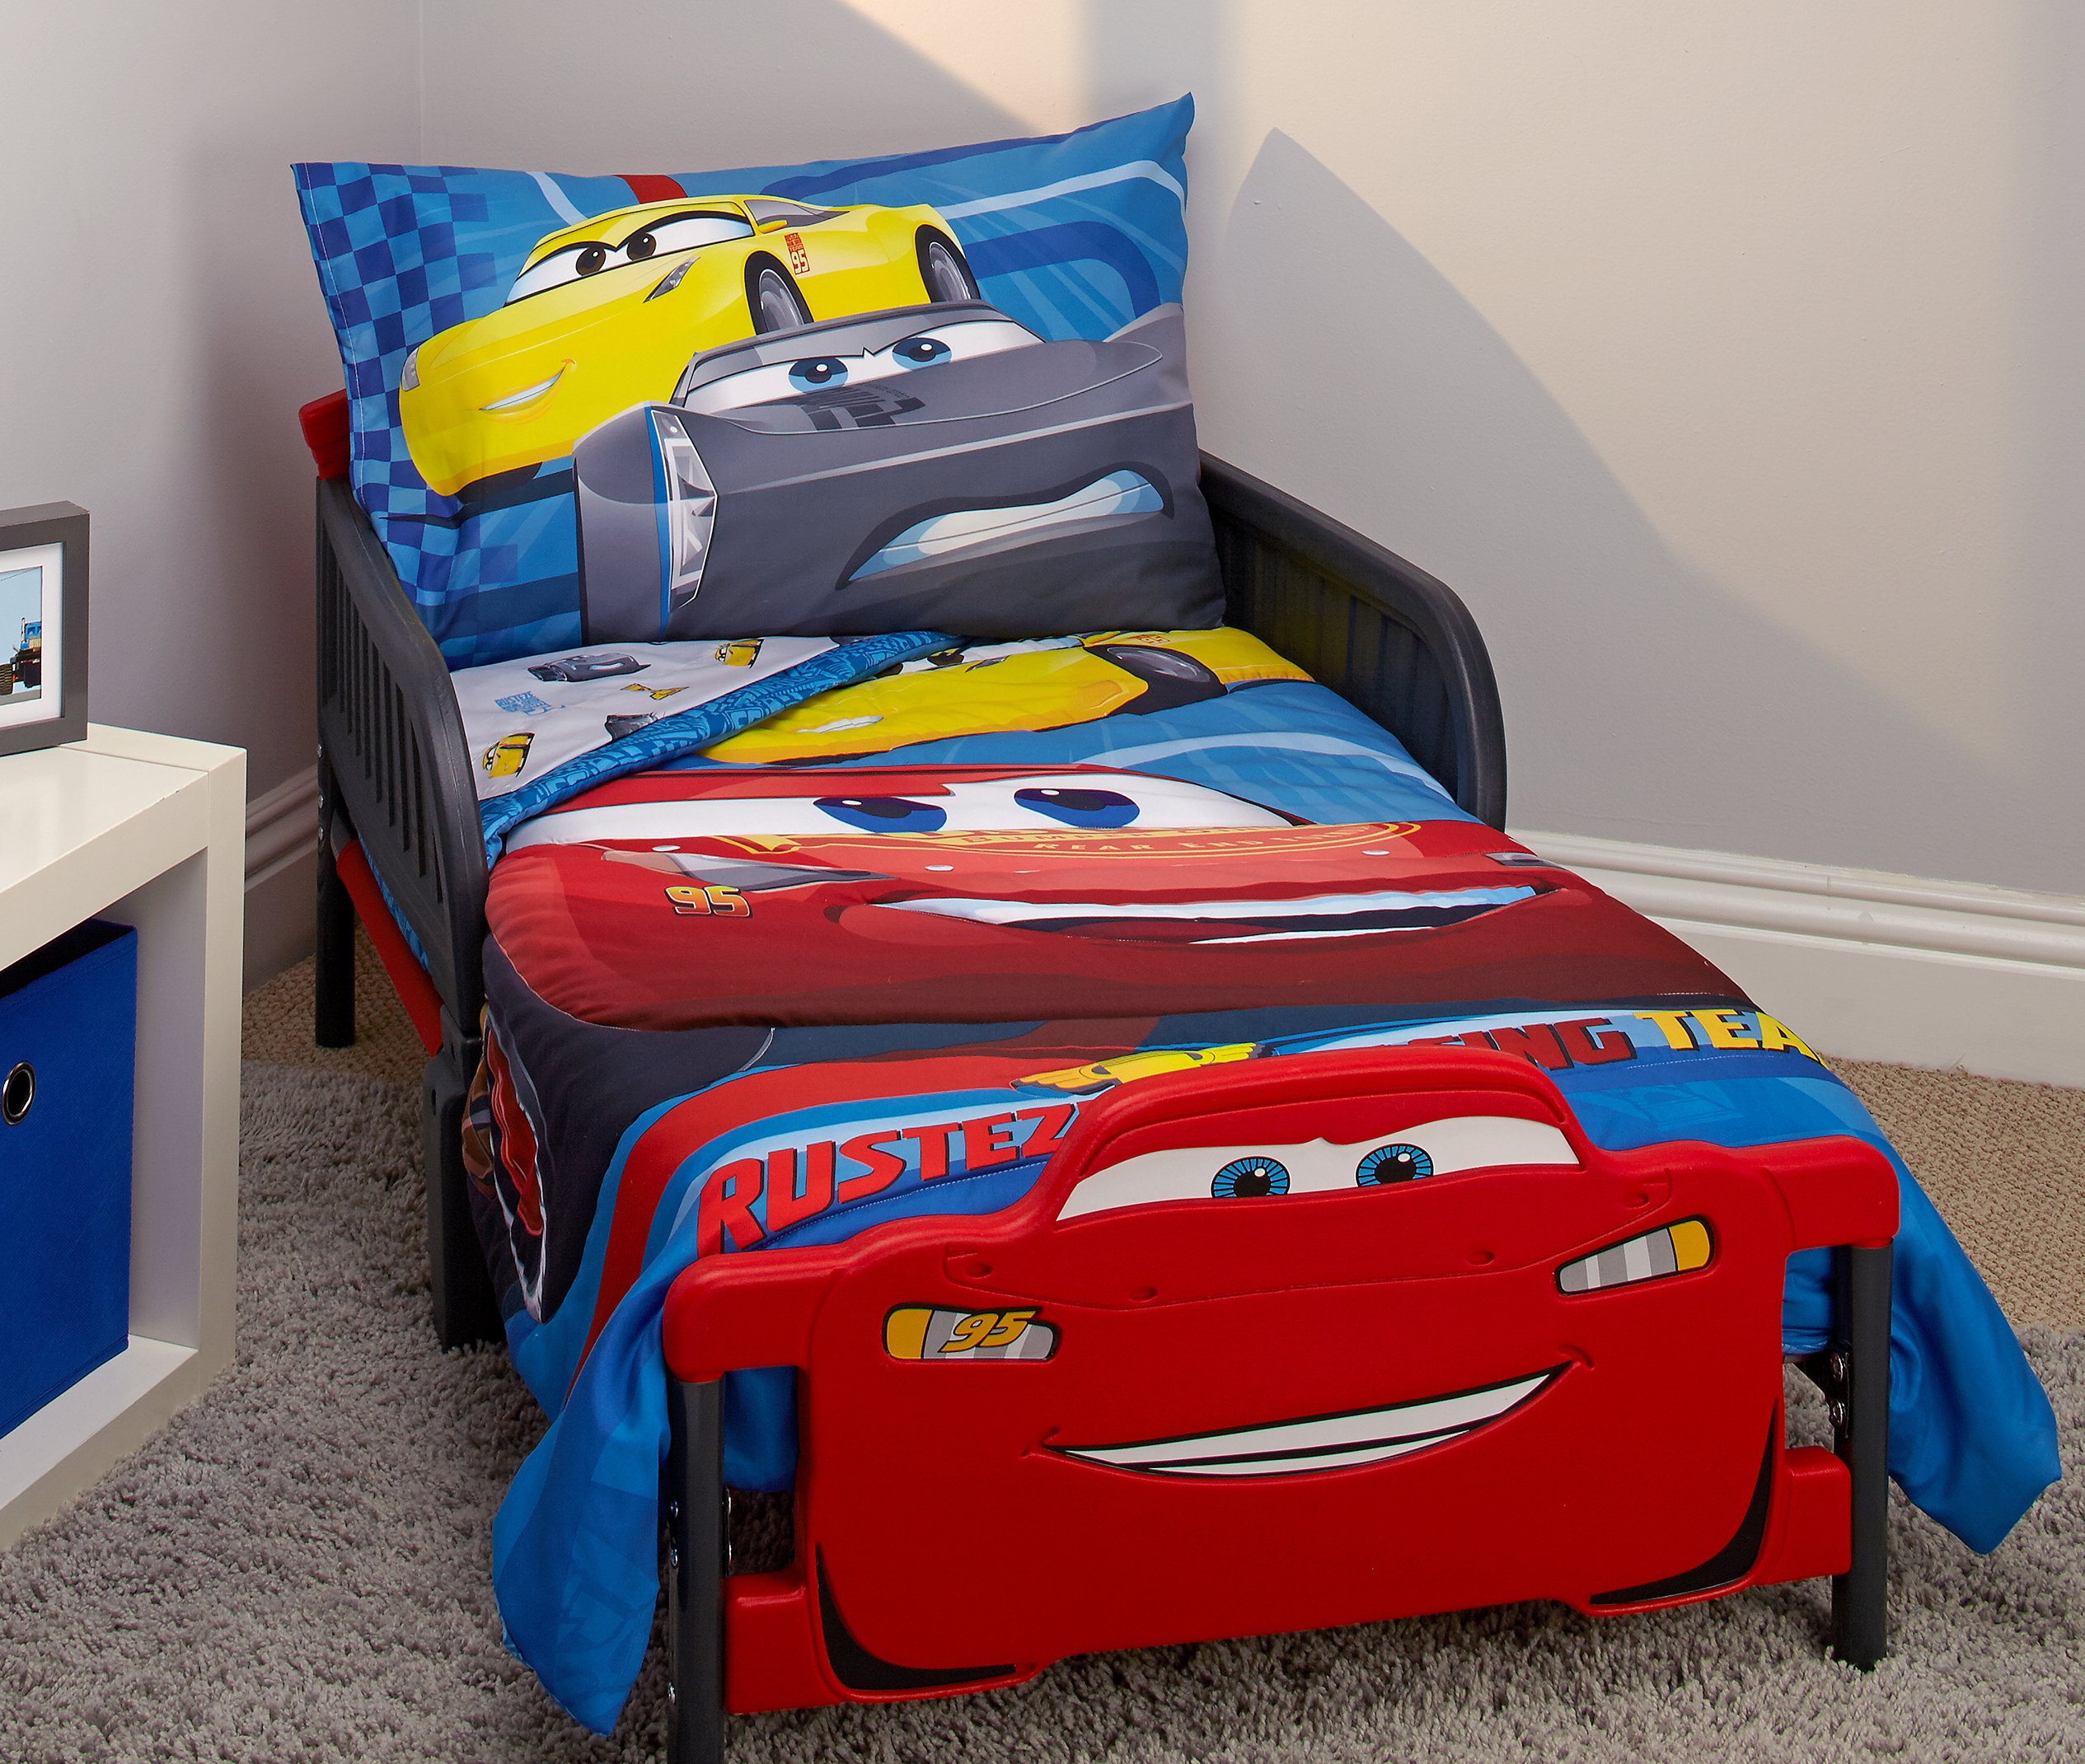 Disney Cars Rusteze Racing Team 4 Piece Toddler Bedding Set Blue Red Yellow